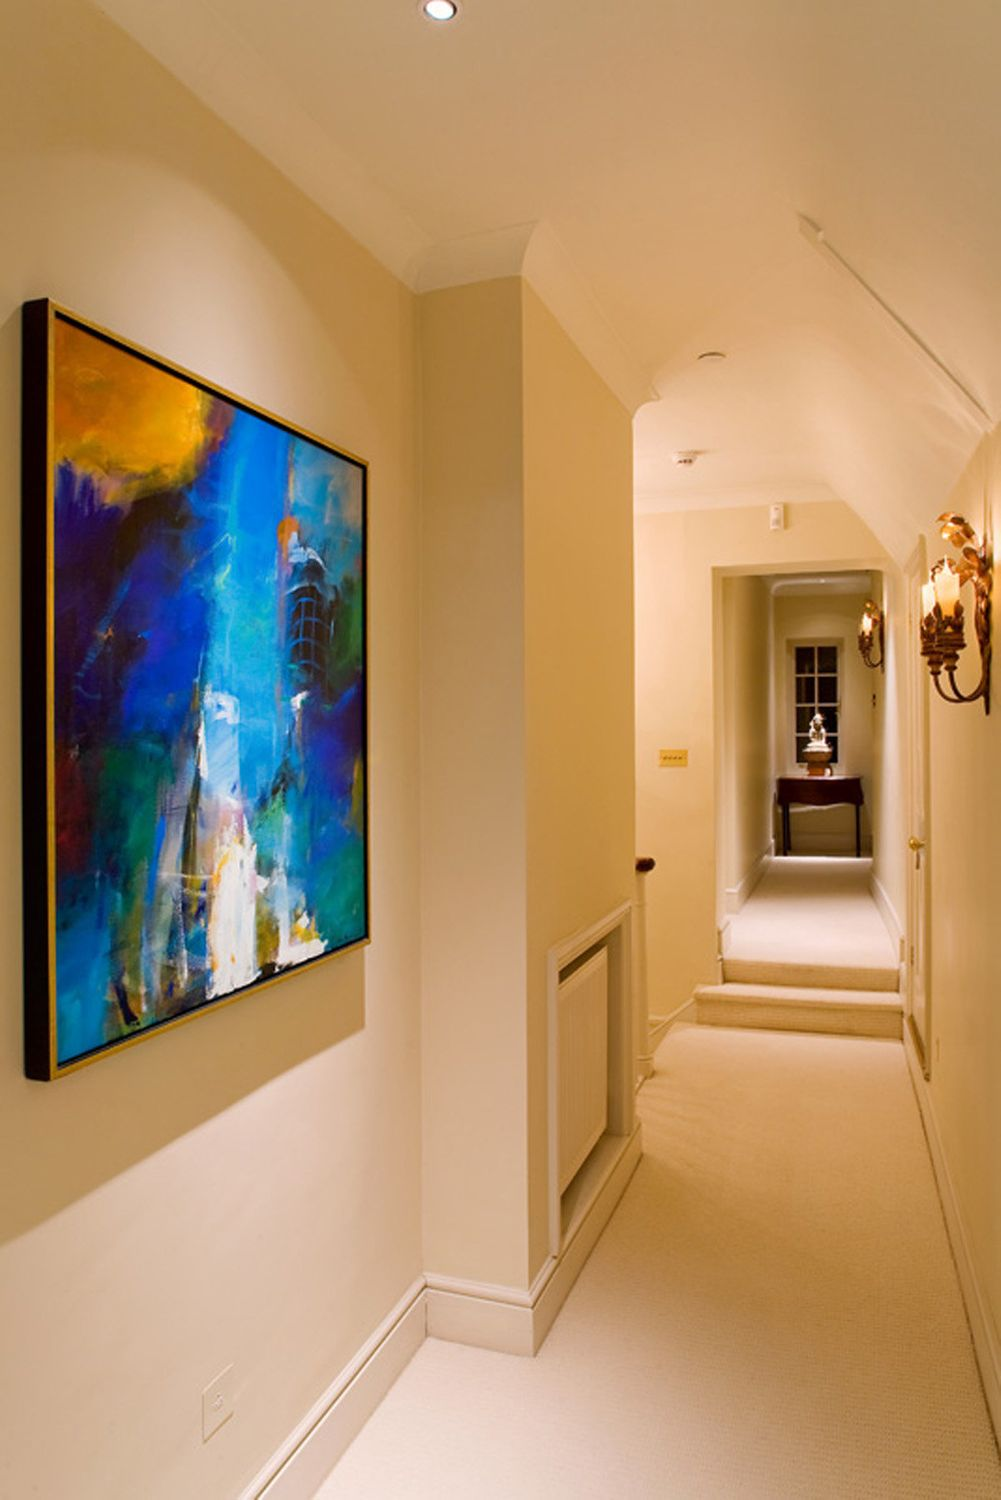 Lighting Basement Washroom Stairs: Master Class On Light And Art With Philip Mould And Sally